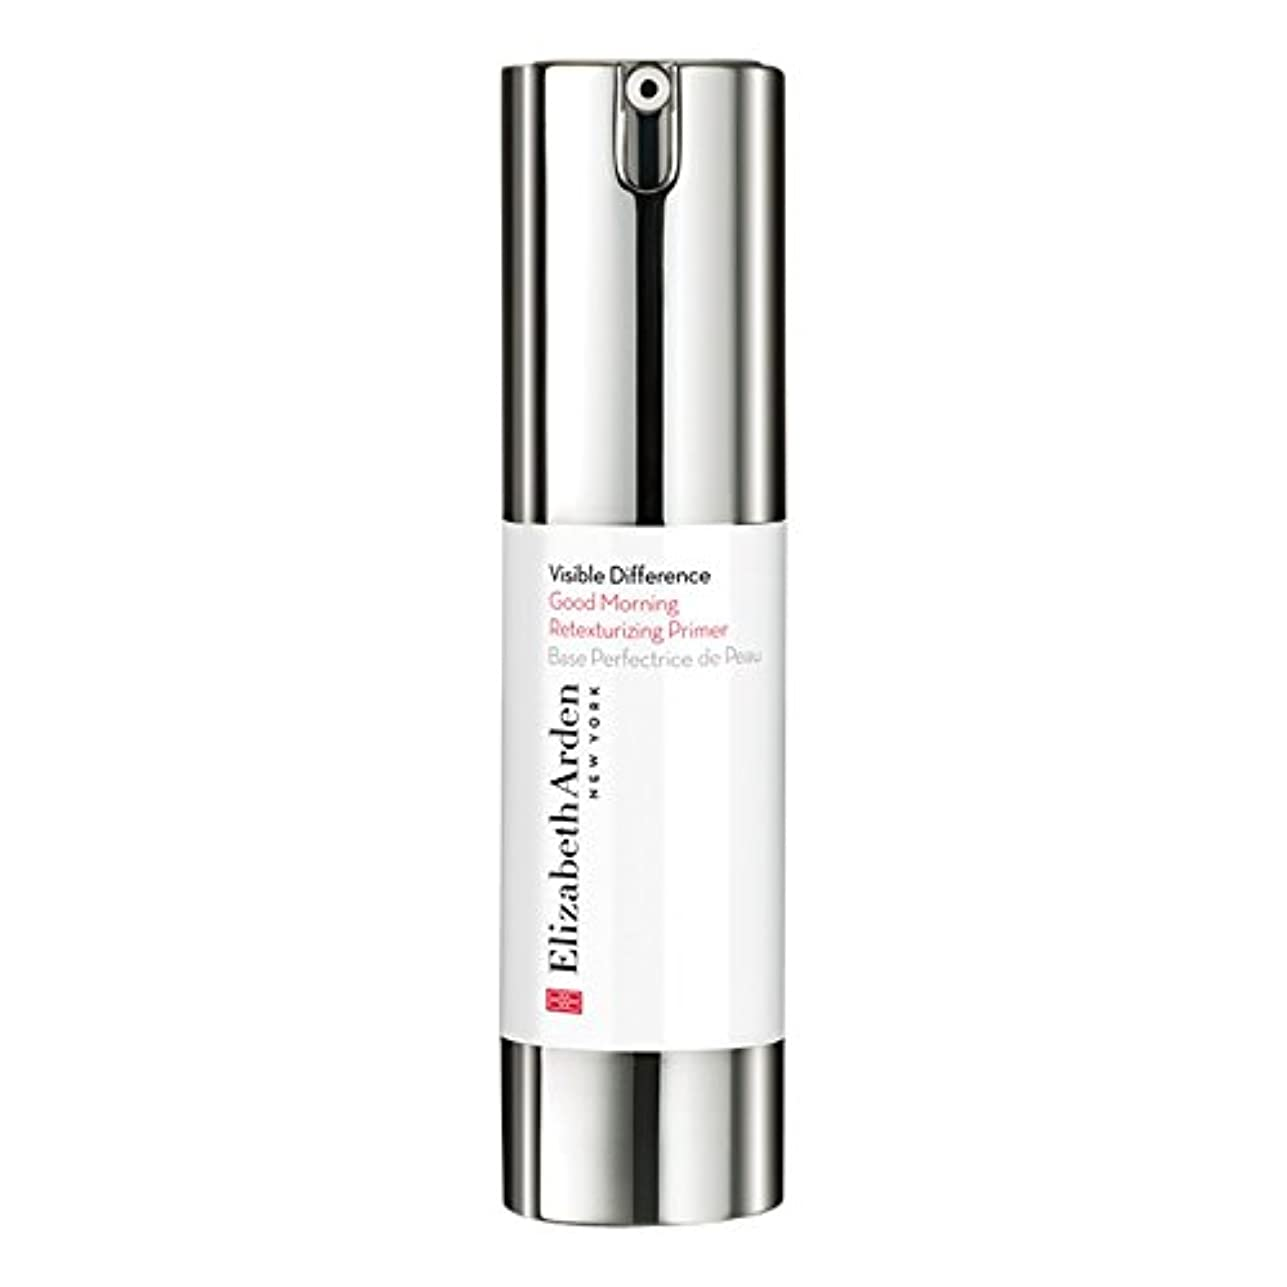 Elizabeth Arden Visible Difference Retexturizing Primer 15ml (Pack of 6) - エリザベスは、プライマー15ミリリットルを目に見える違いをアーデン x6...